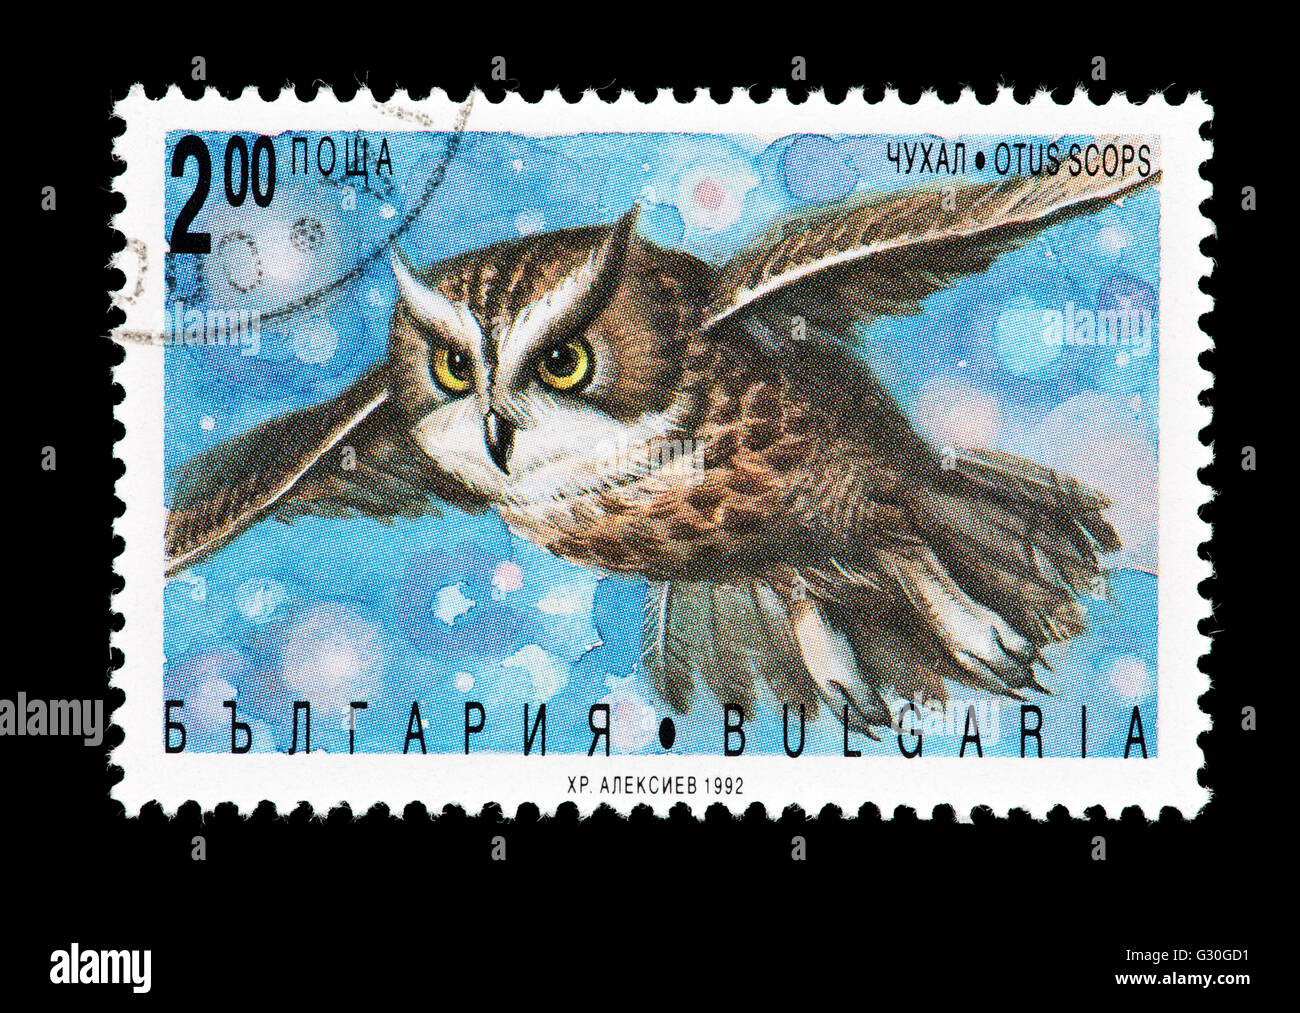 Postage Stamp From Bulgaria Depicting Eurasian Scops Owl Otus